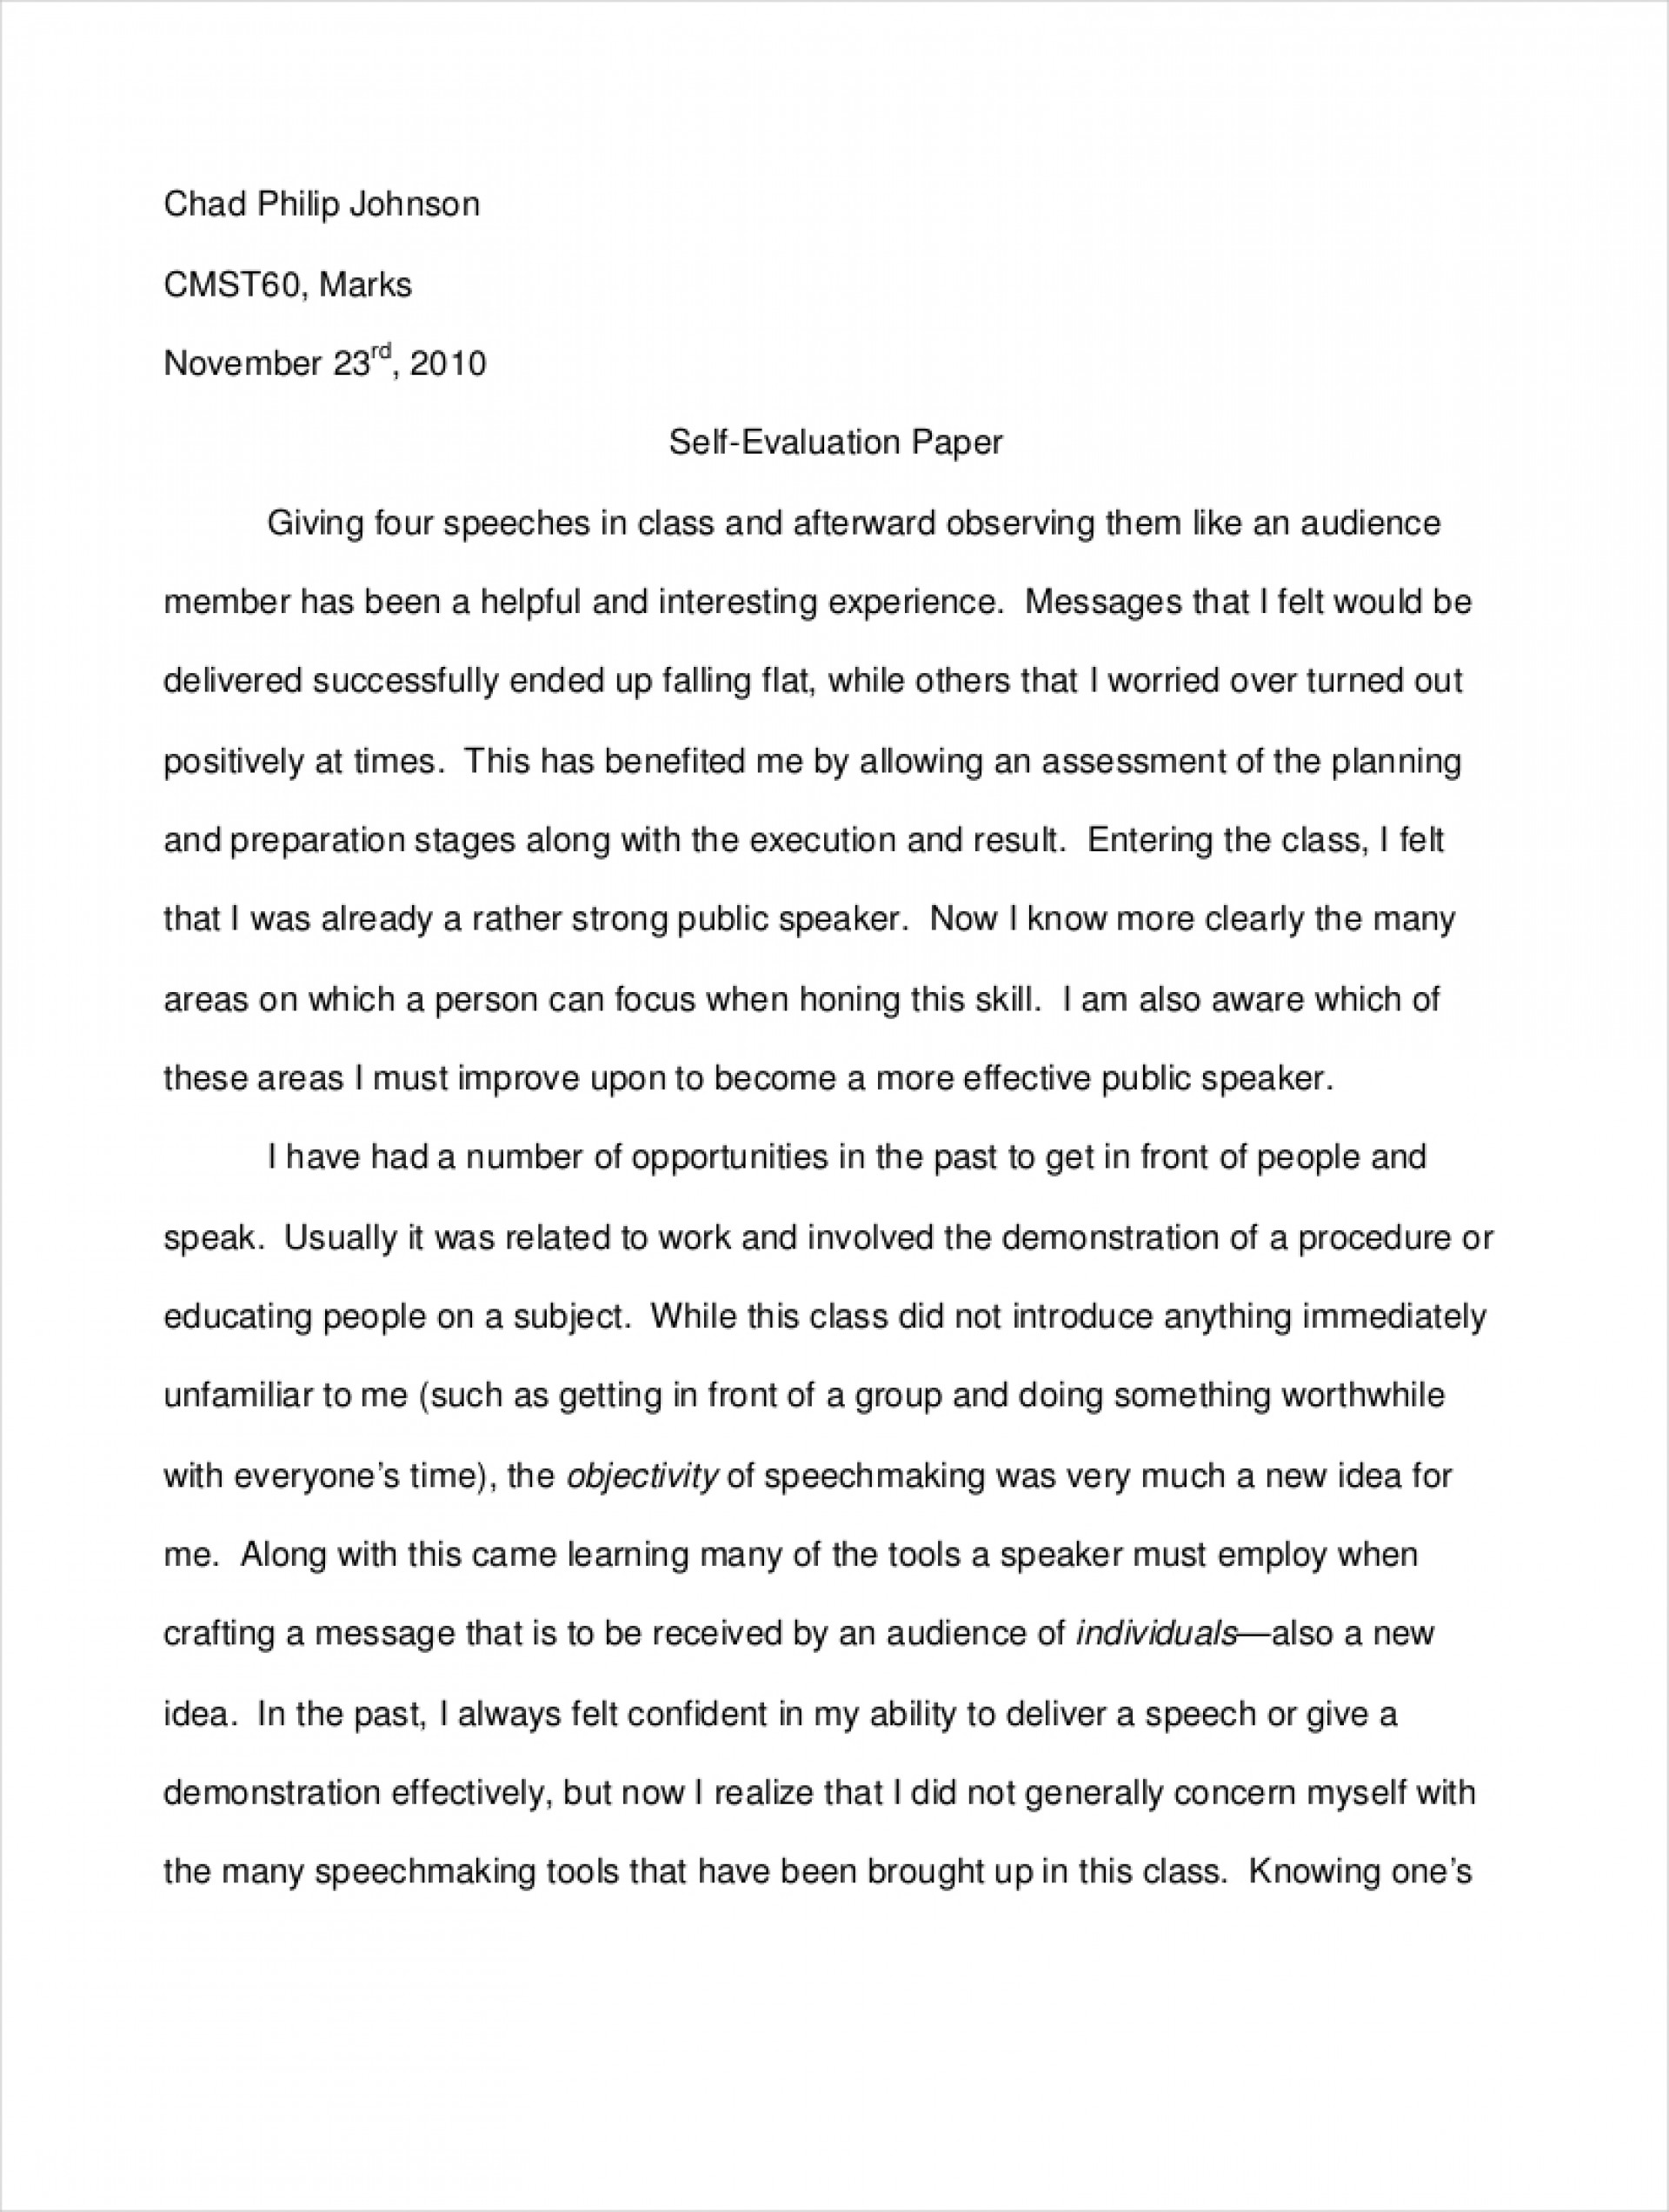 002 Evaluation Essay Topics Example Ideas Of Examples Awful Questions With Criteria 1920